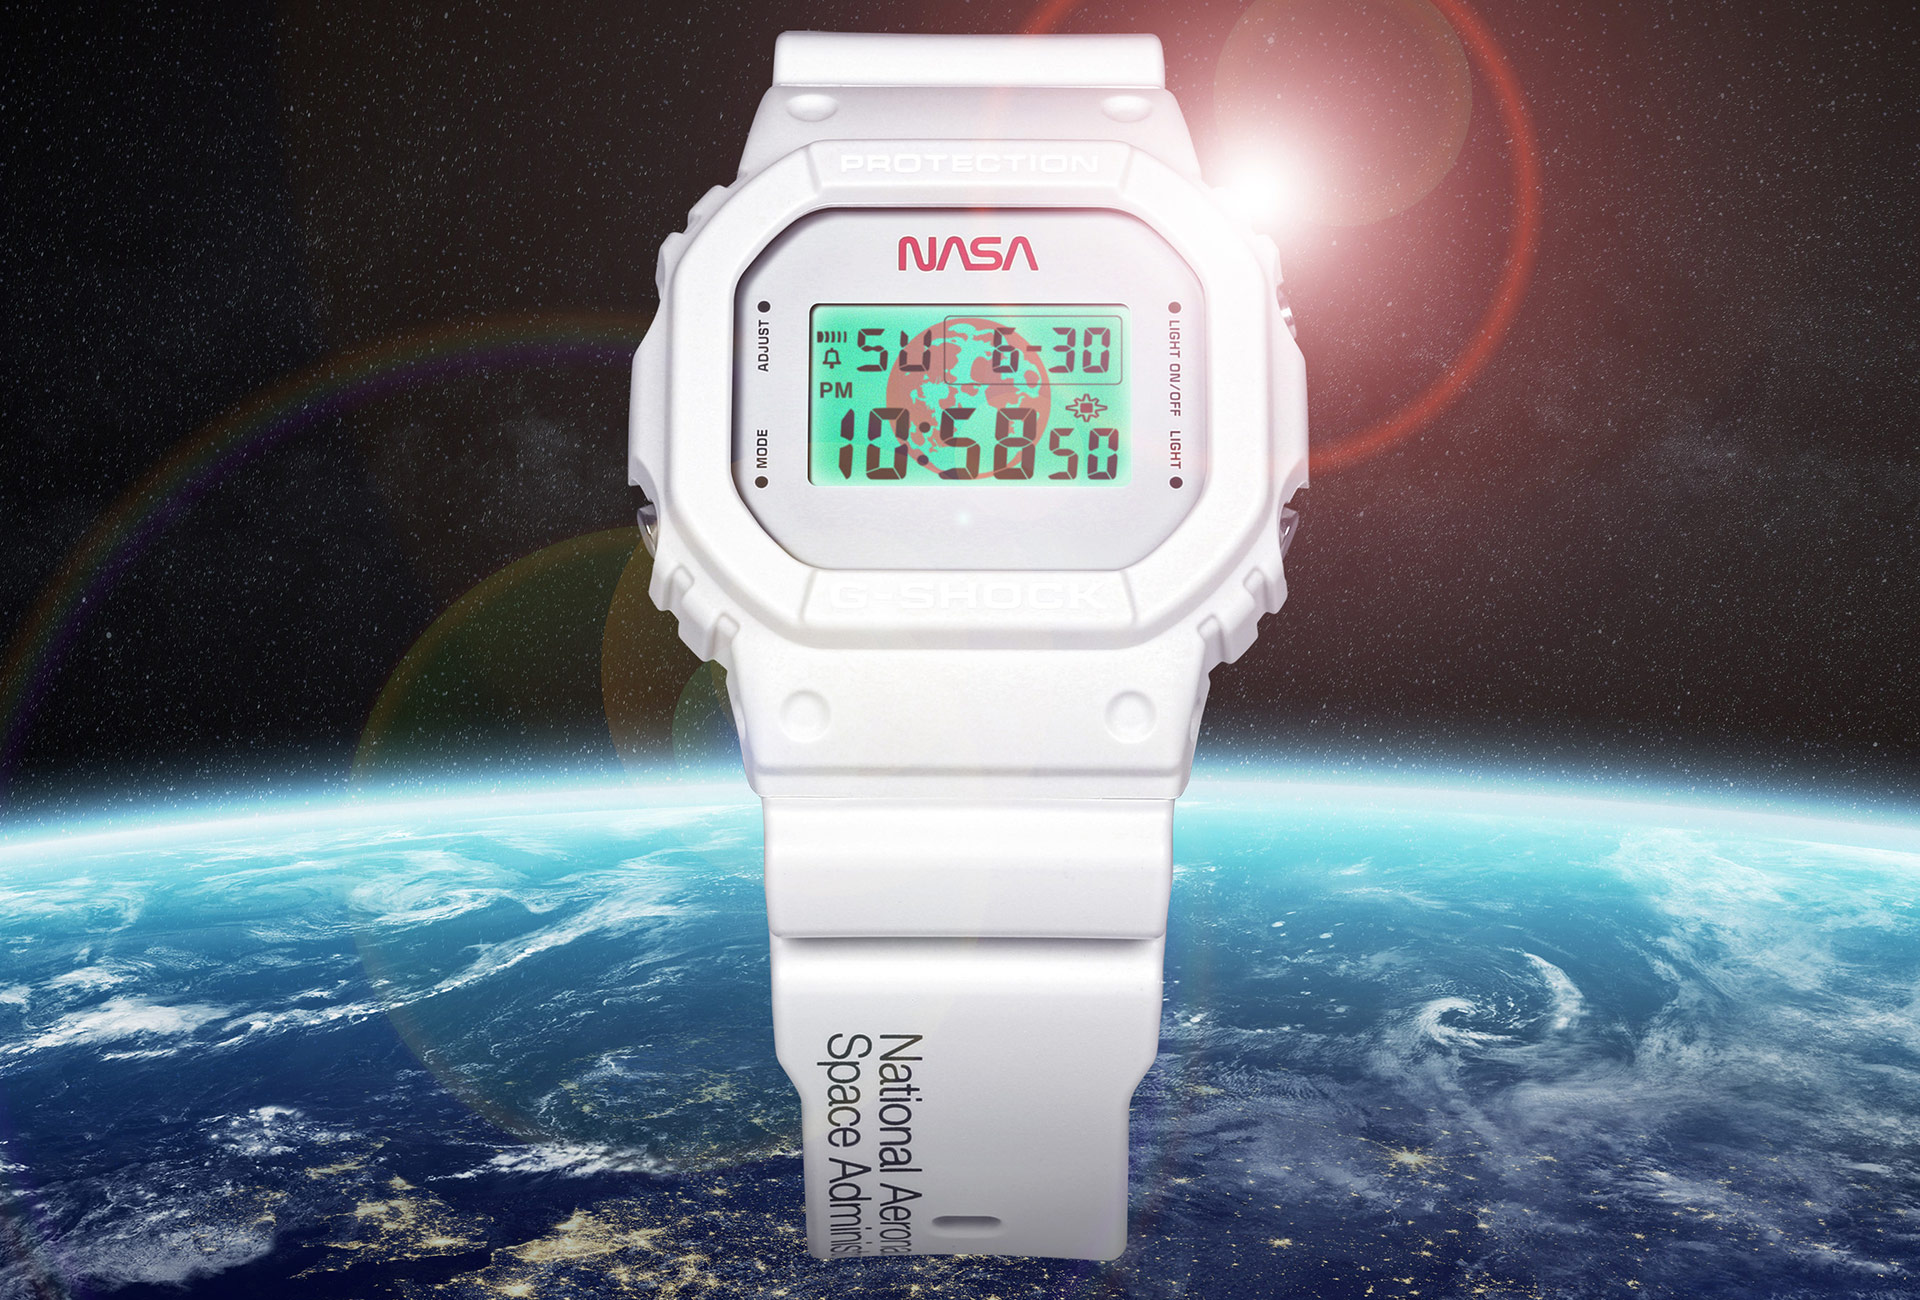 Casio G-SHOCK Pays Homage to NASA with Limited-Edition G-SHOCK Timepiece